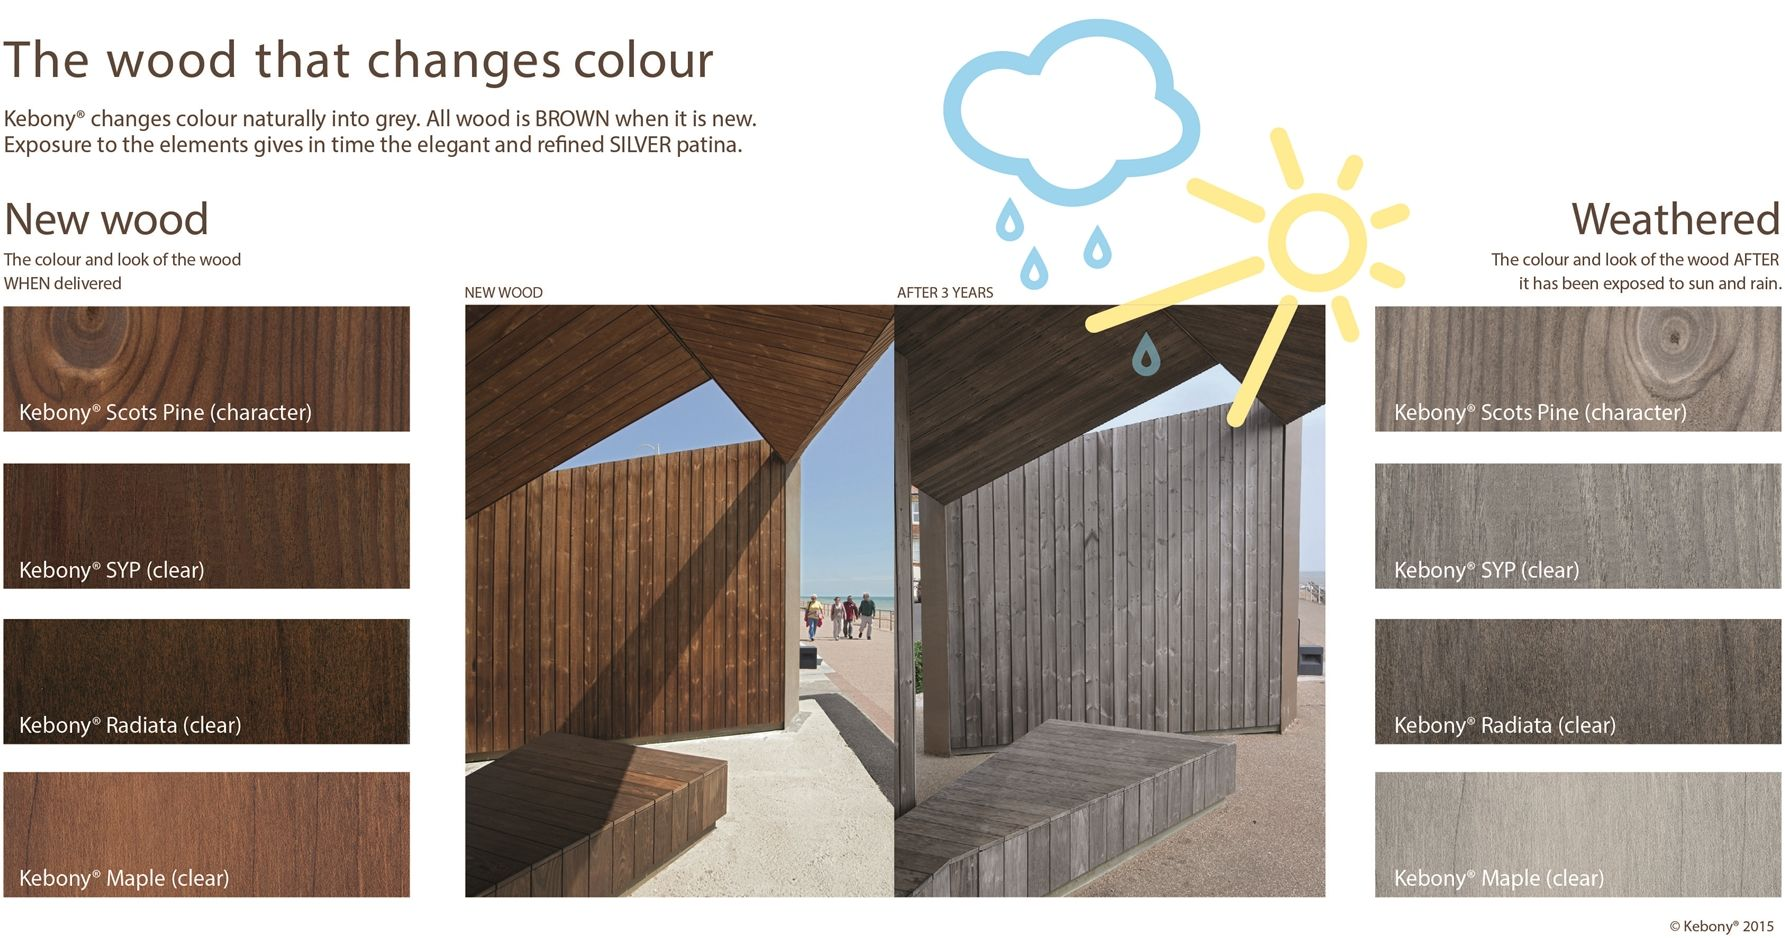 Natural And Beautiful Kebony Wood Changes With The Passage Of Time Uteplass